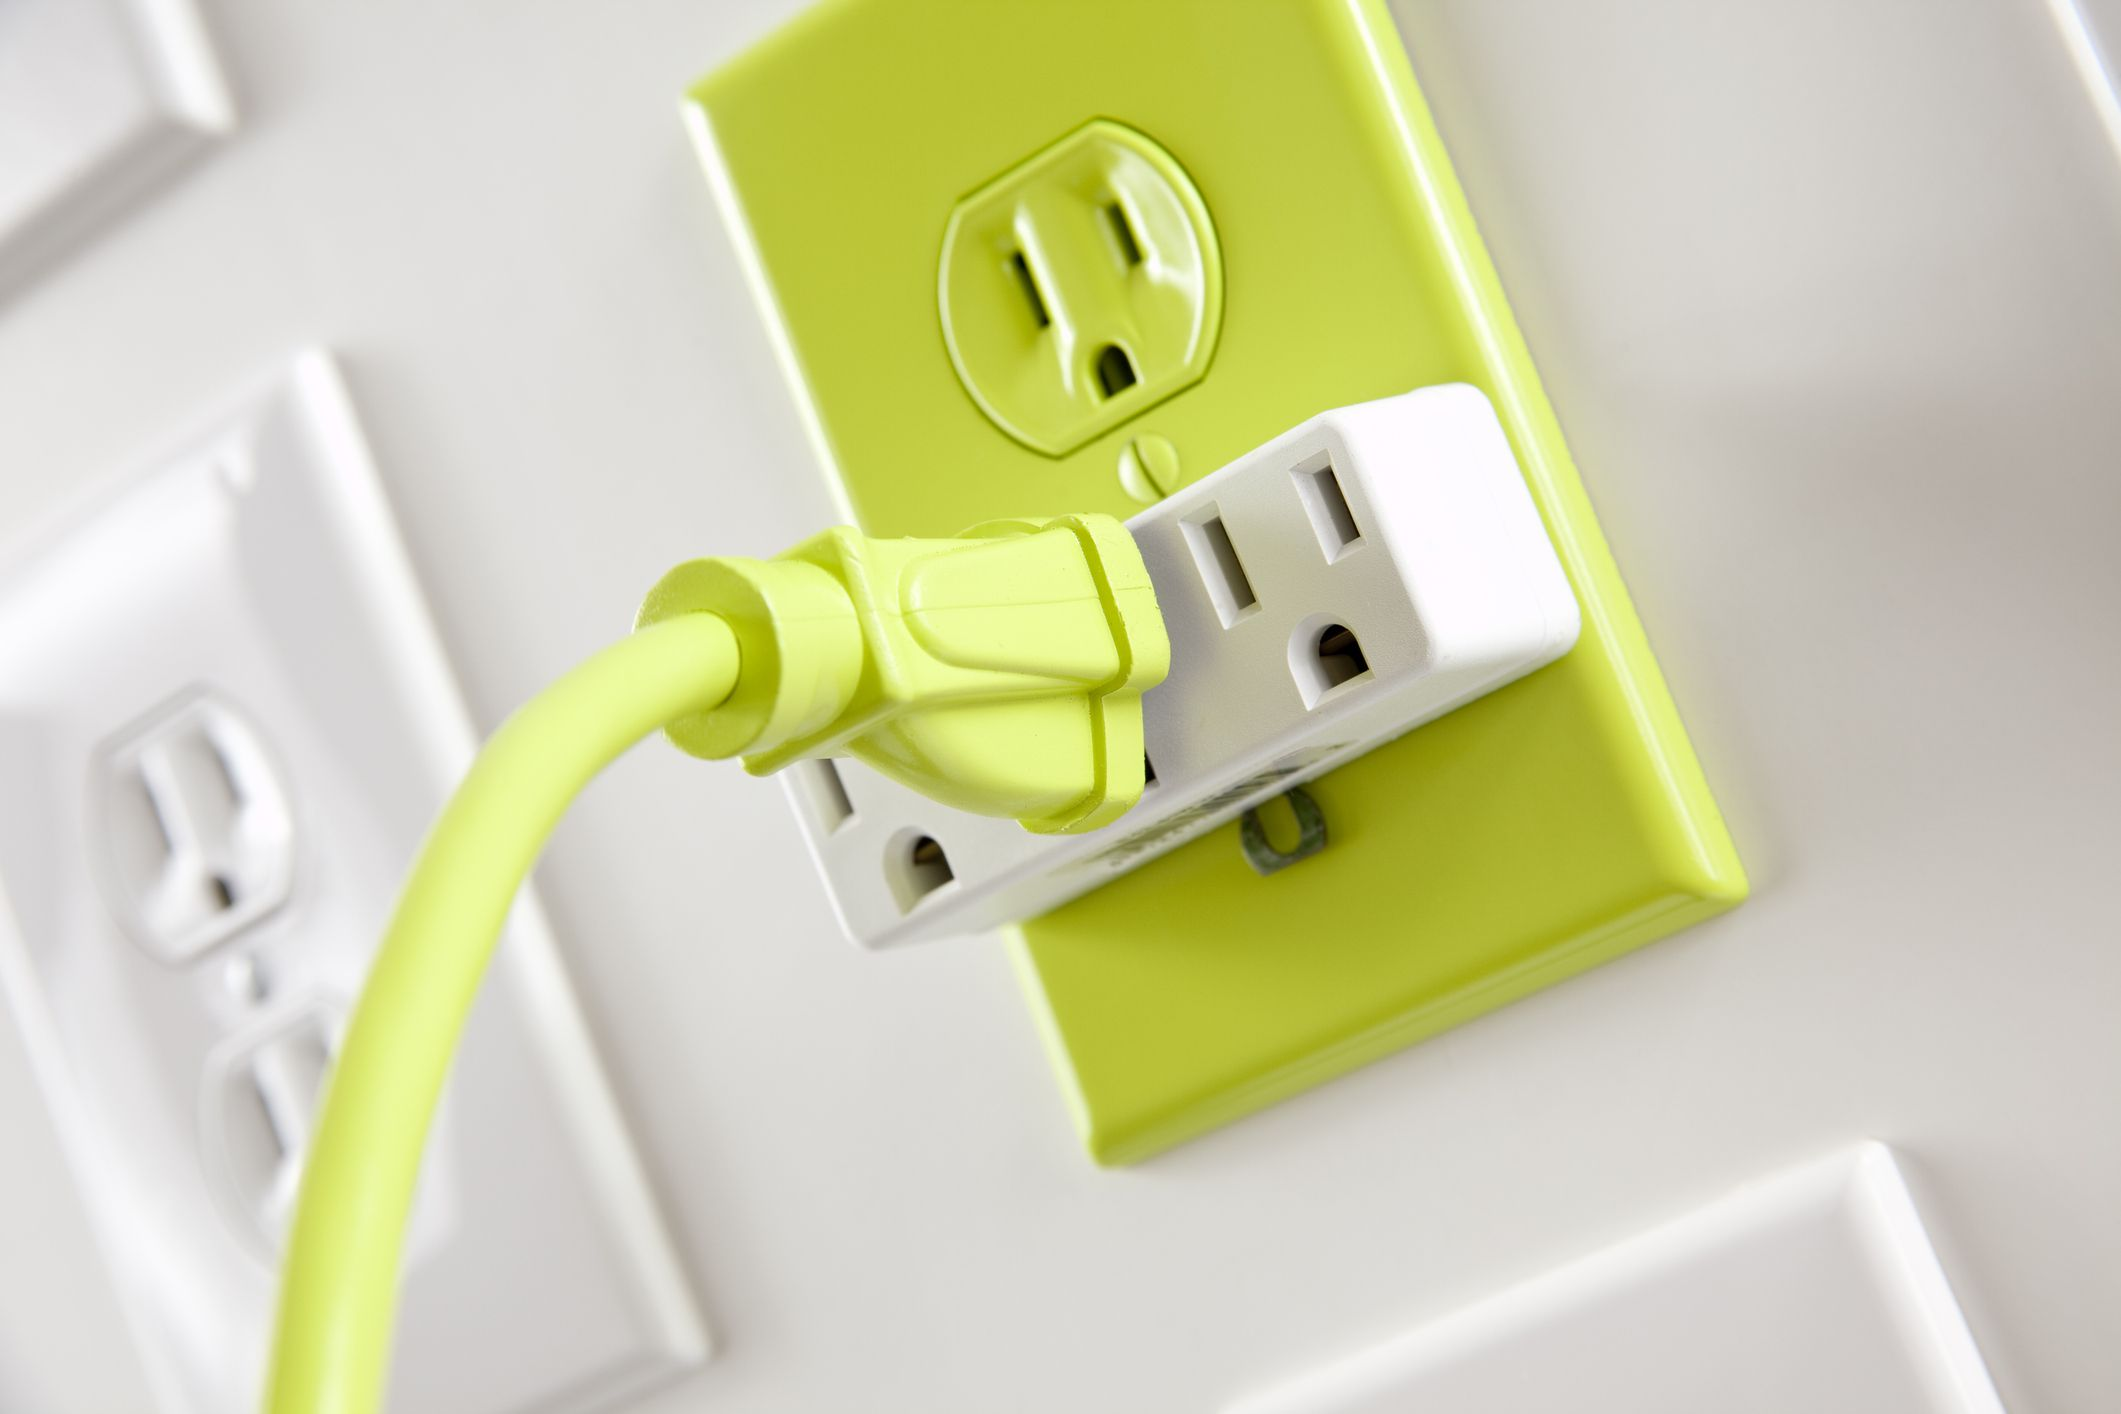 Why Plug Adapters Should Not Be Used Wiring In The Home No Power To Bathroom Receptacles Gfci Multiple